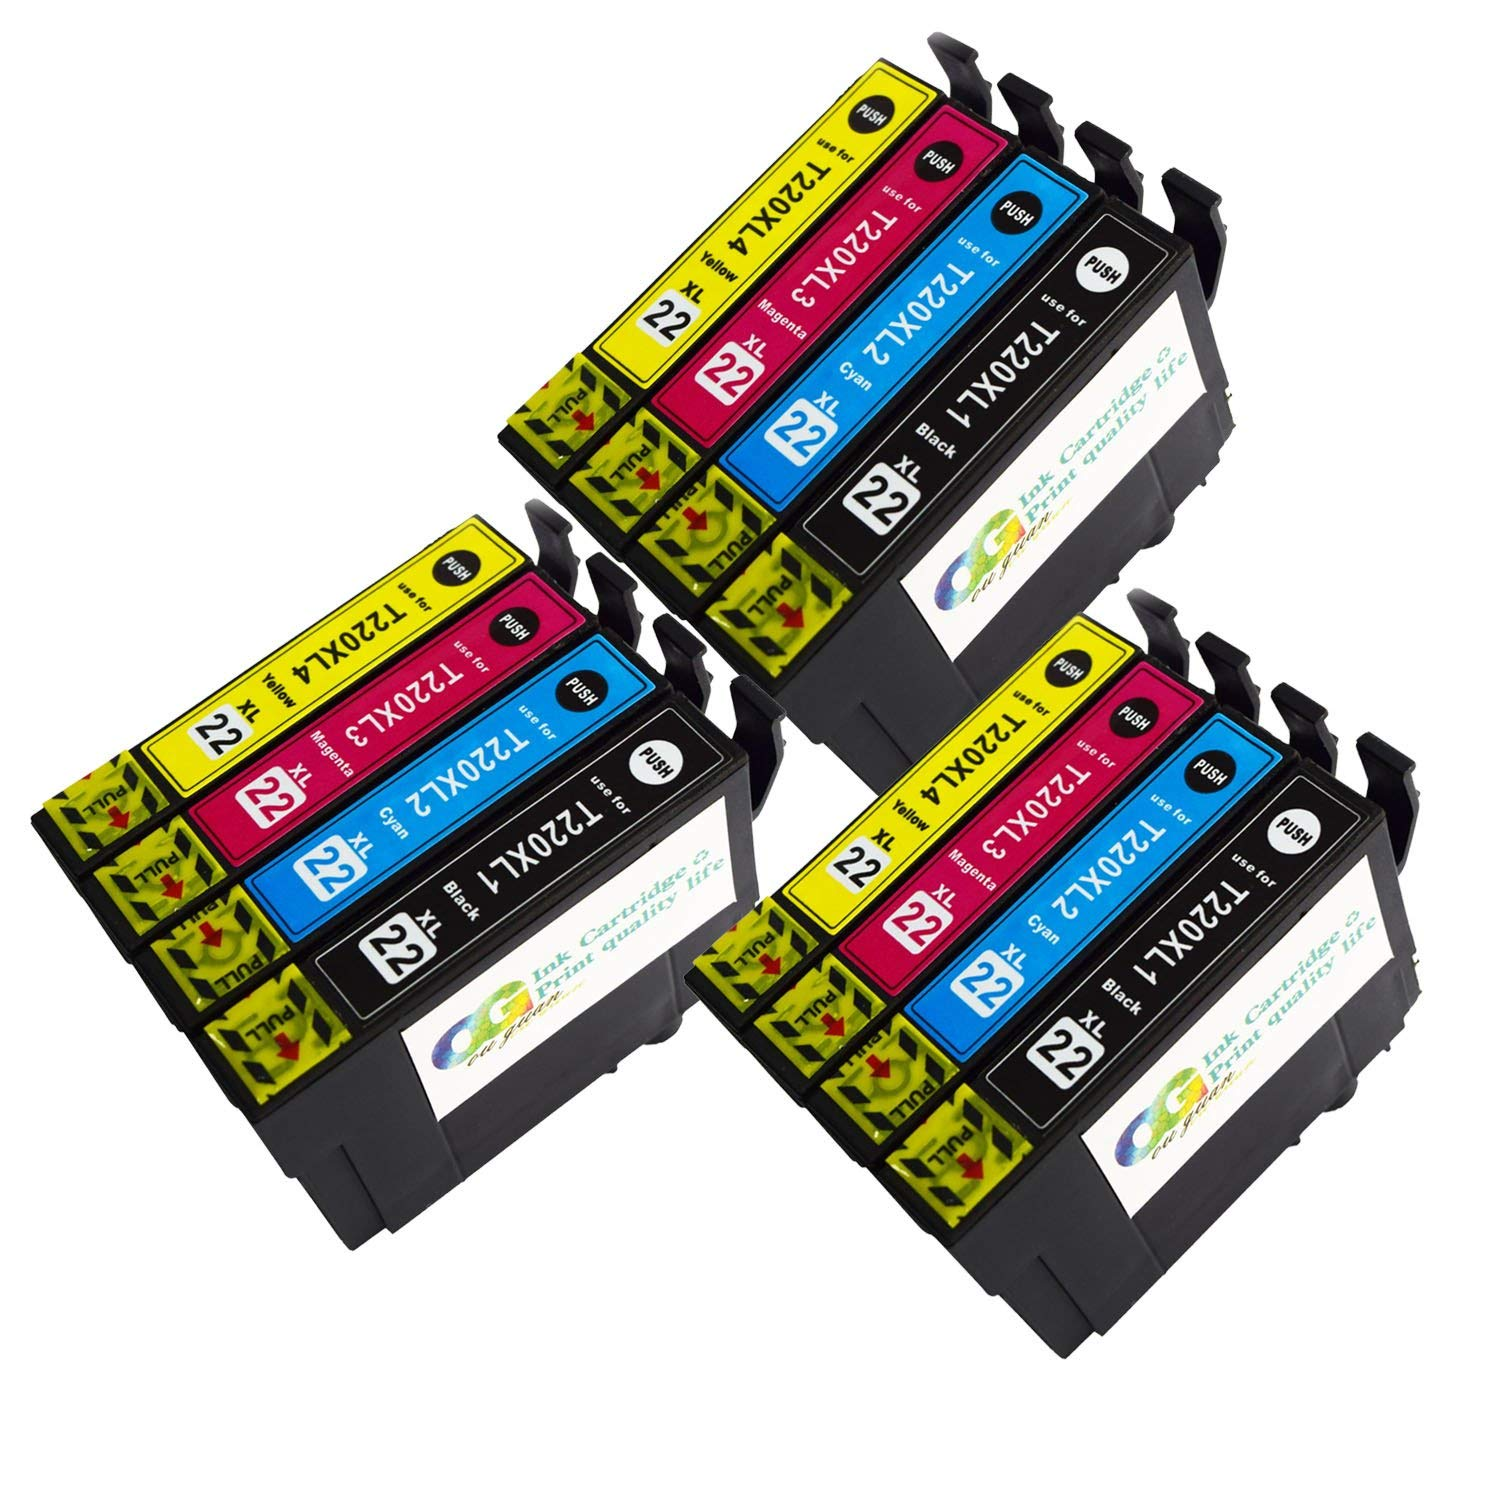 Lic Store 12-Pack replacement Remanufactured 220 T220 220XL Ink Cartridge for use in WF-2760 WF-2750 WF-2630 WF-2650 WF-2660 XP-320 XP-424 XP-420 series printer. 12 PK (3BK 3C 3M 3Y)